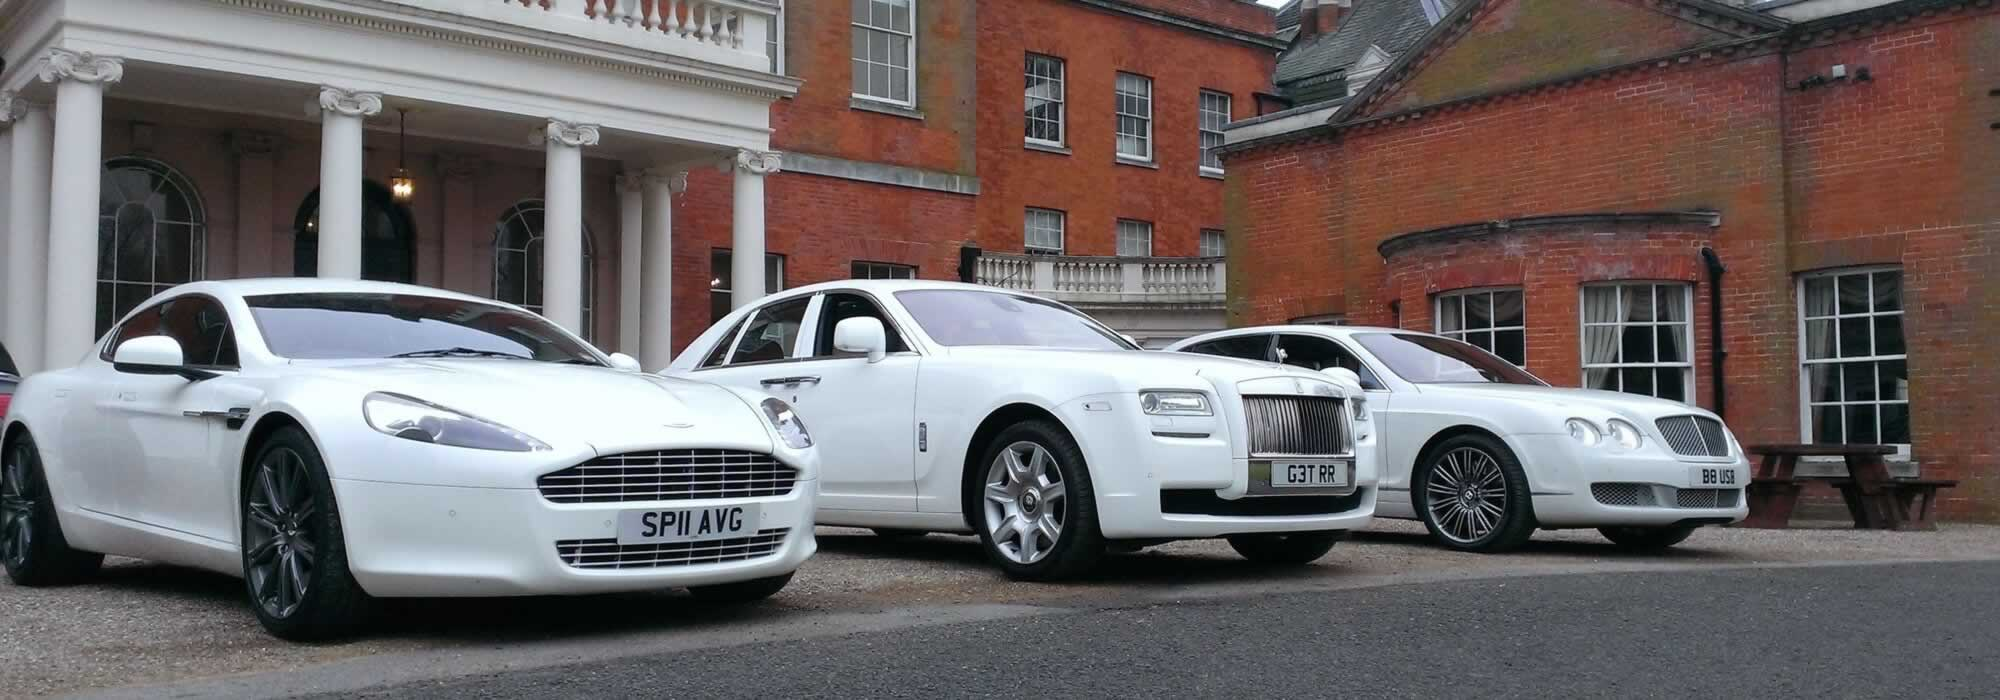 wedding car hire service